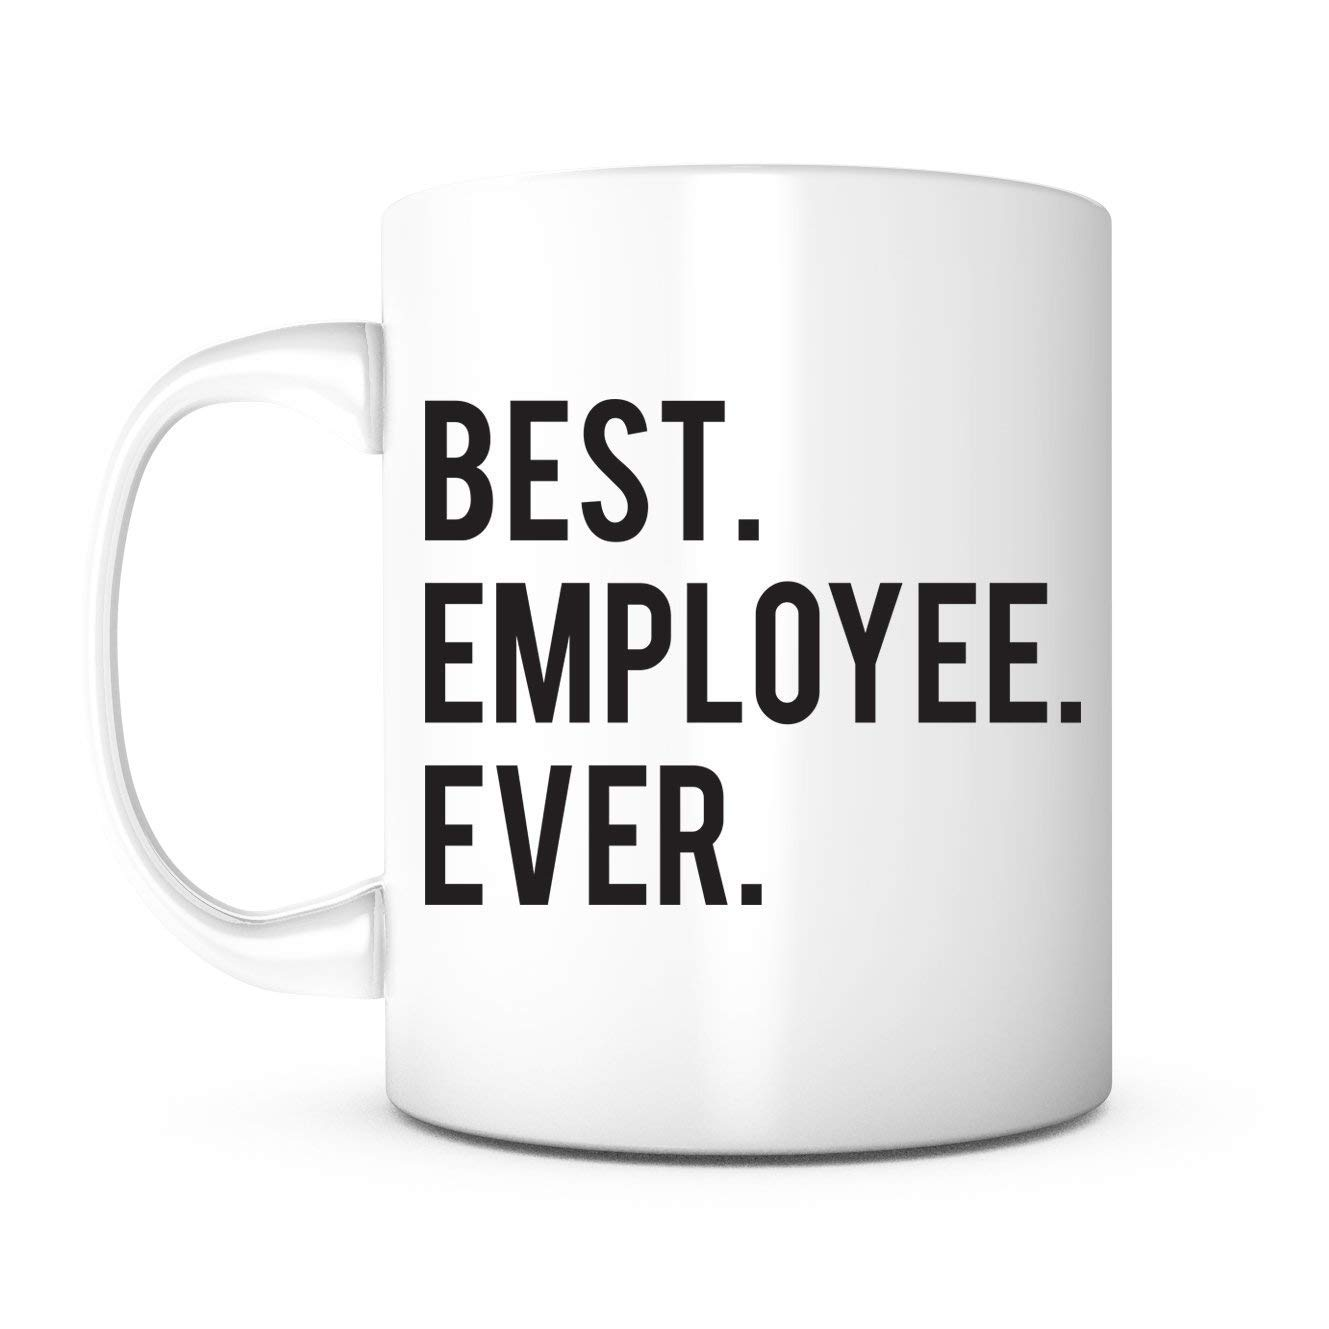 Best Employee Ever Appreciation GiftsGifts For EmployeeEmployee GiftEmployee BirthdayEmployee ChristmasStaff Coffee MugOffice